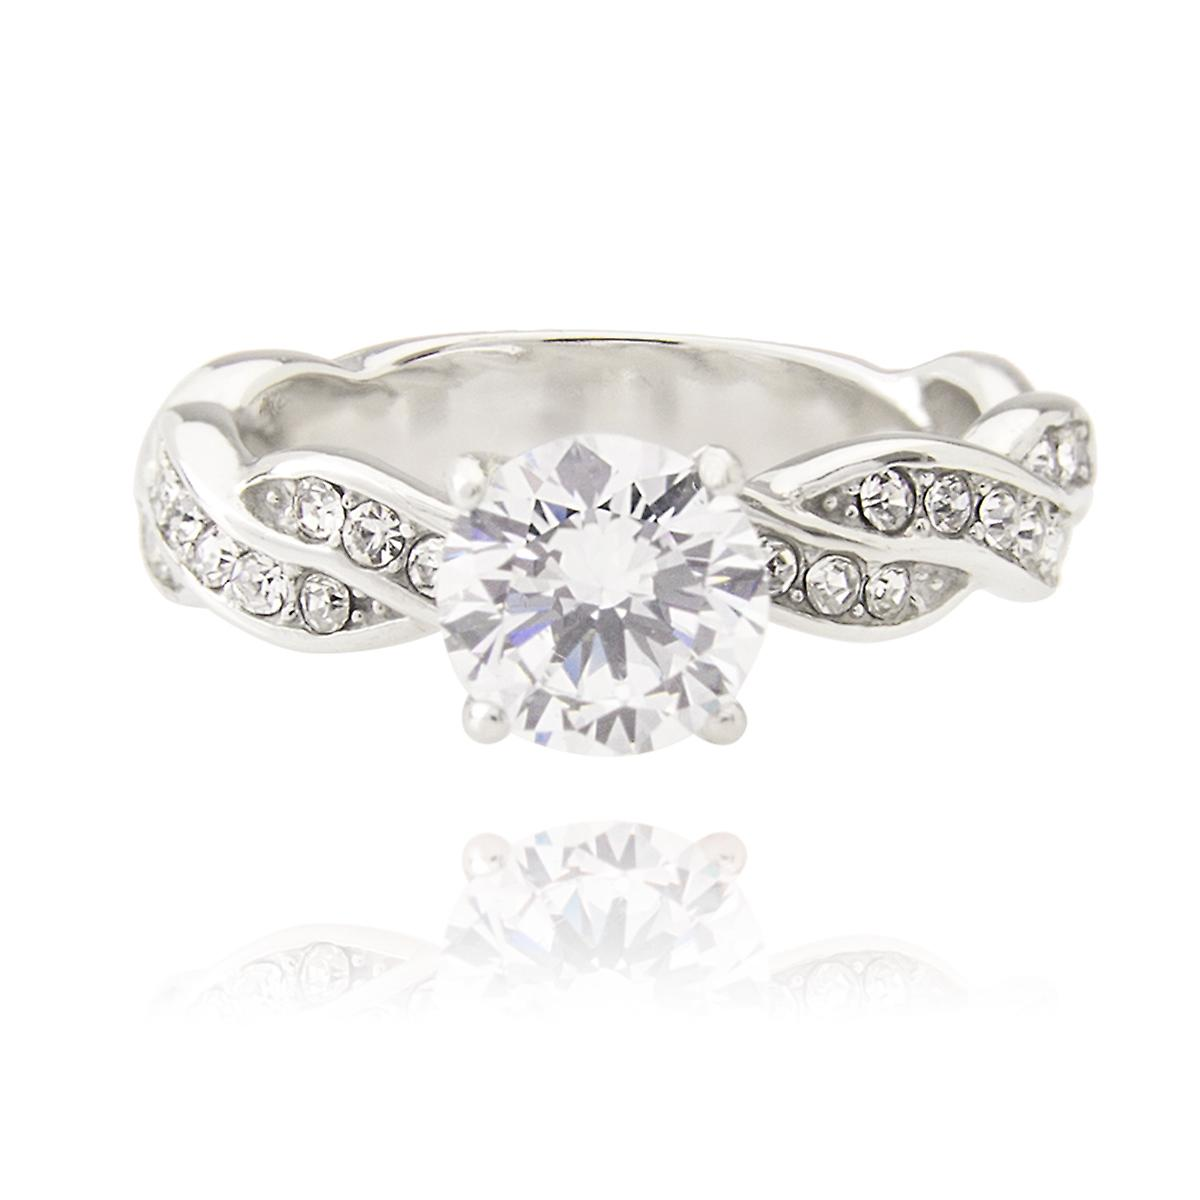 Ah! Jewellery Stainless Steel Simulated Diamond Ring. Brilliant Rounds Entwined Within Each Twist To Give An Elegant Look.